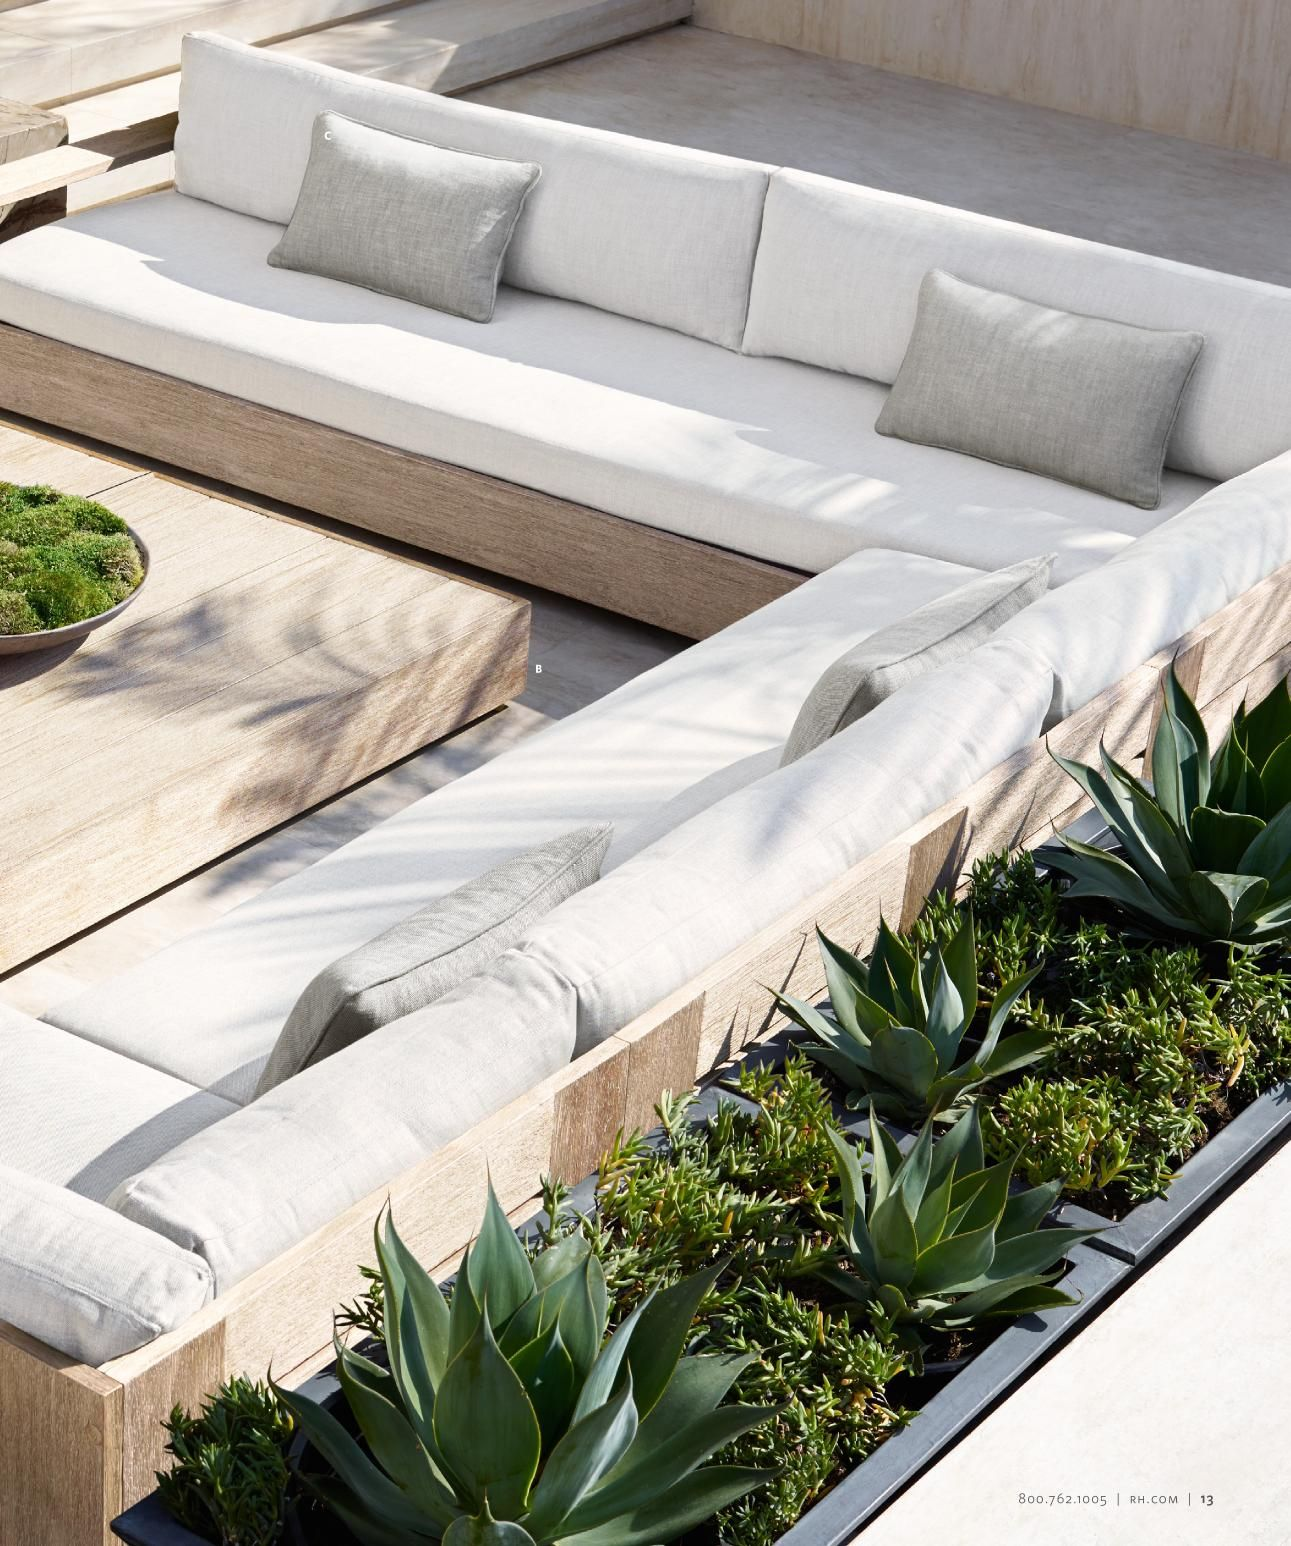 Outdoor sofas outdoor seating bench patio furniture outdoor outdoor bench seat cushions